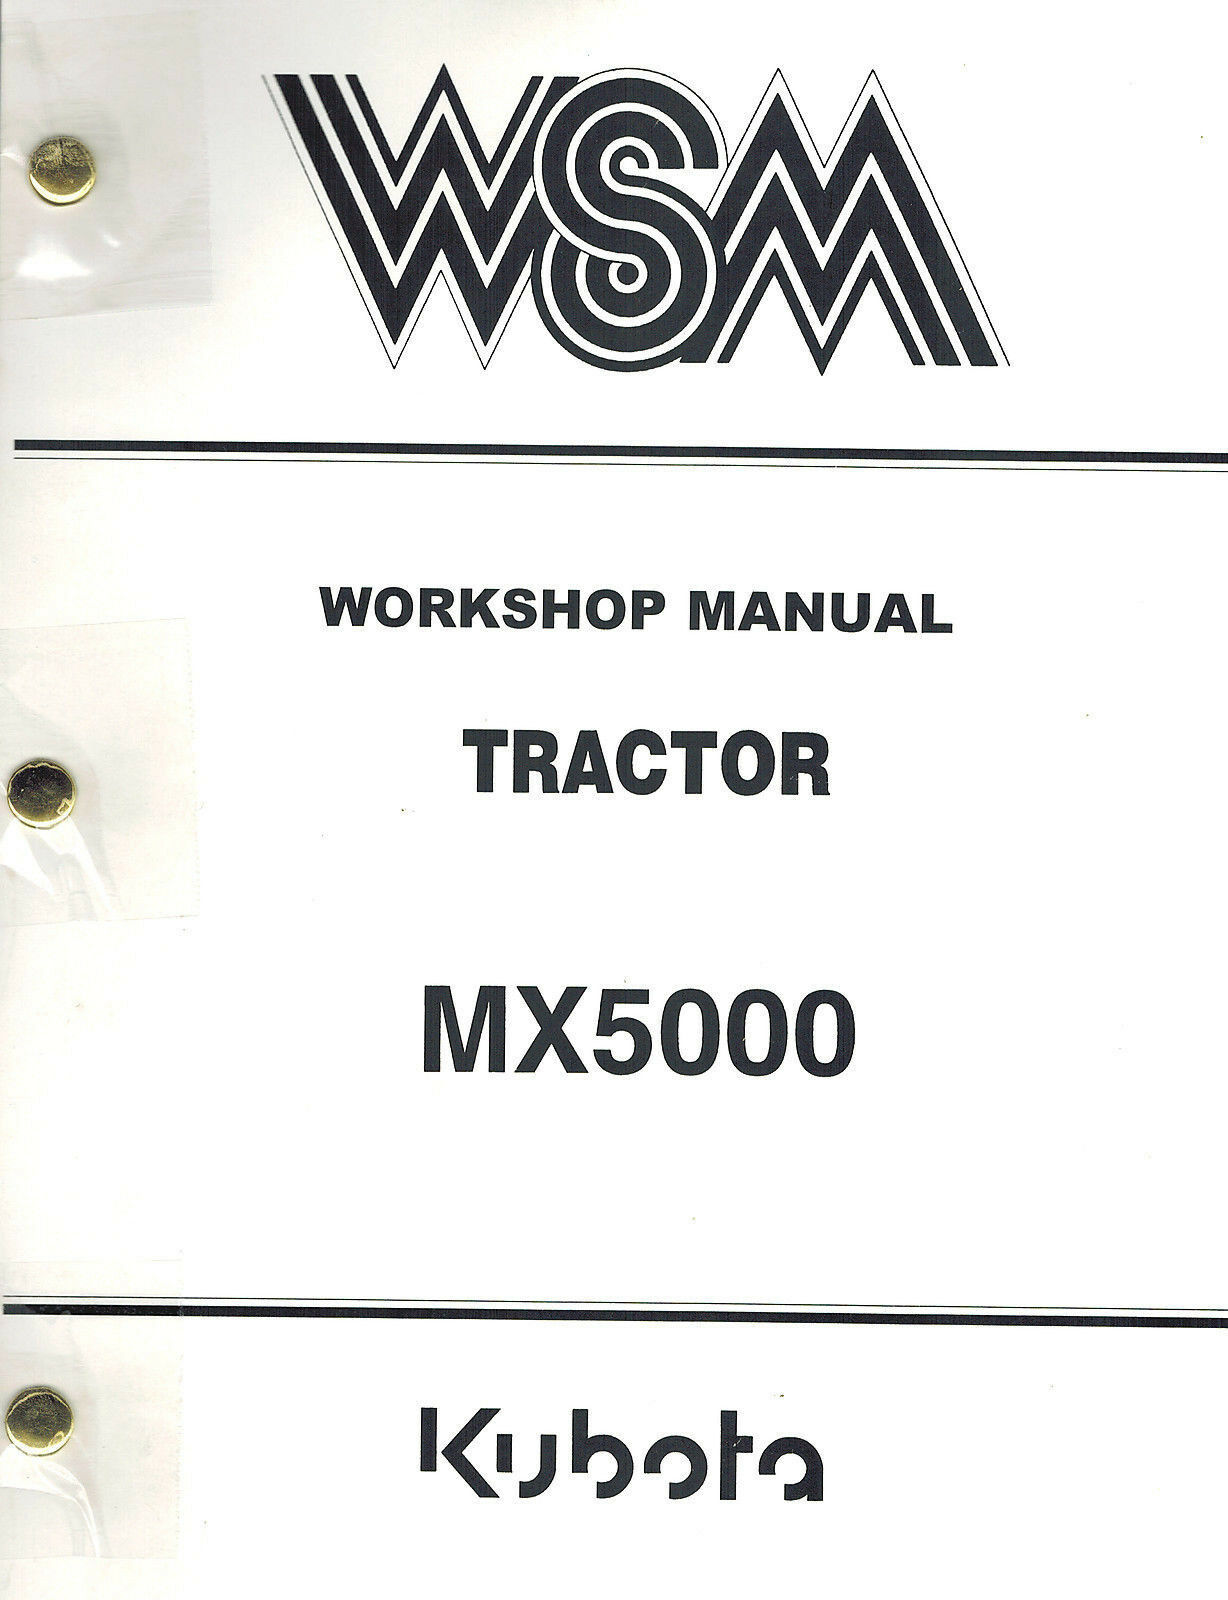 Kubota Mx5000 Tractor Workshop Manual 1 of 6Only 1 available ...